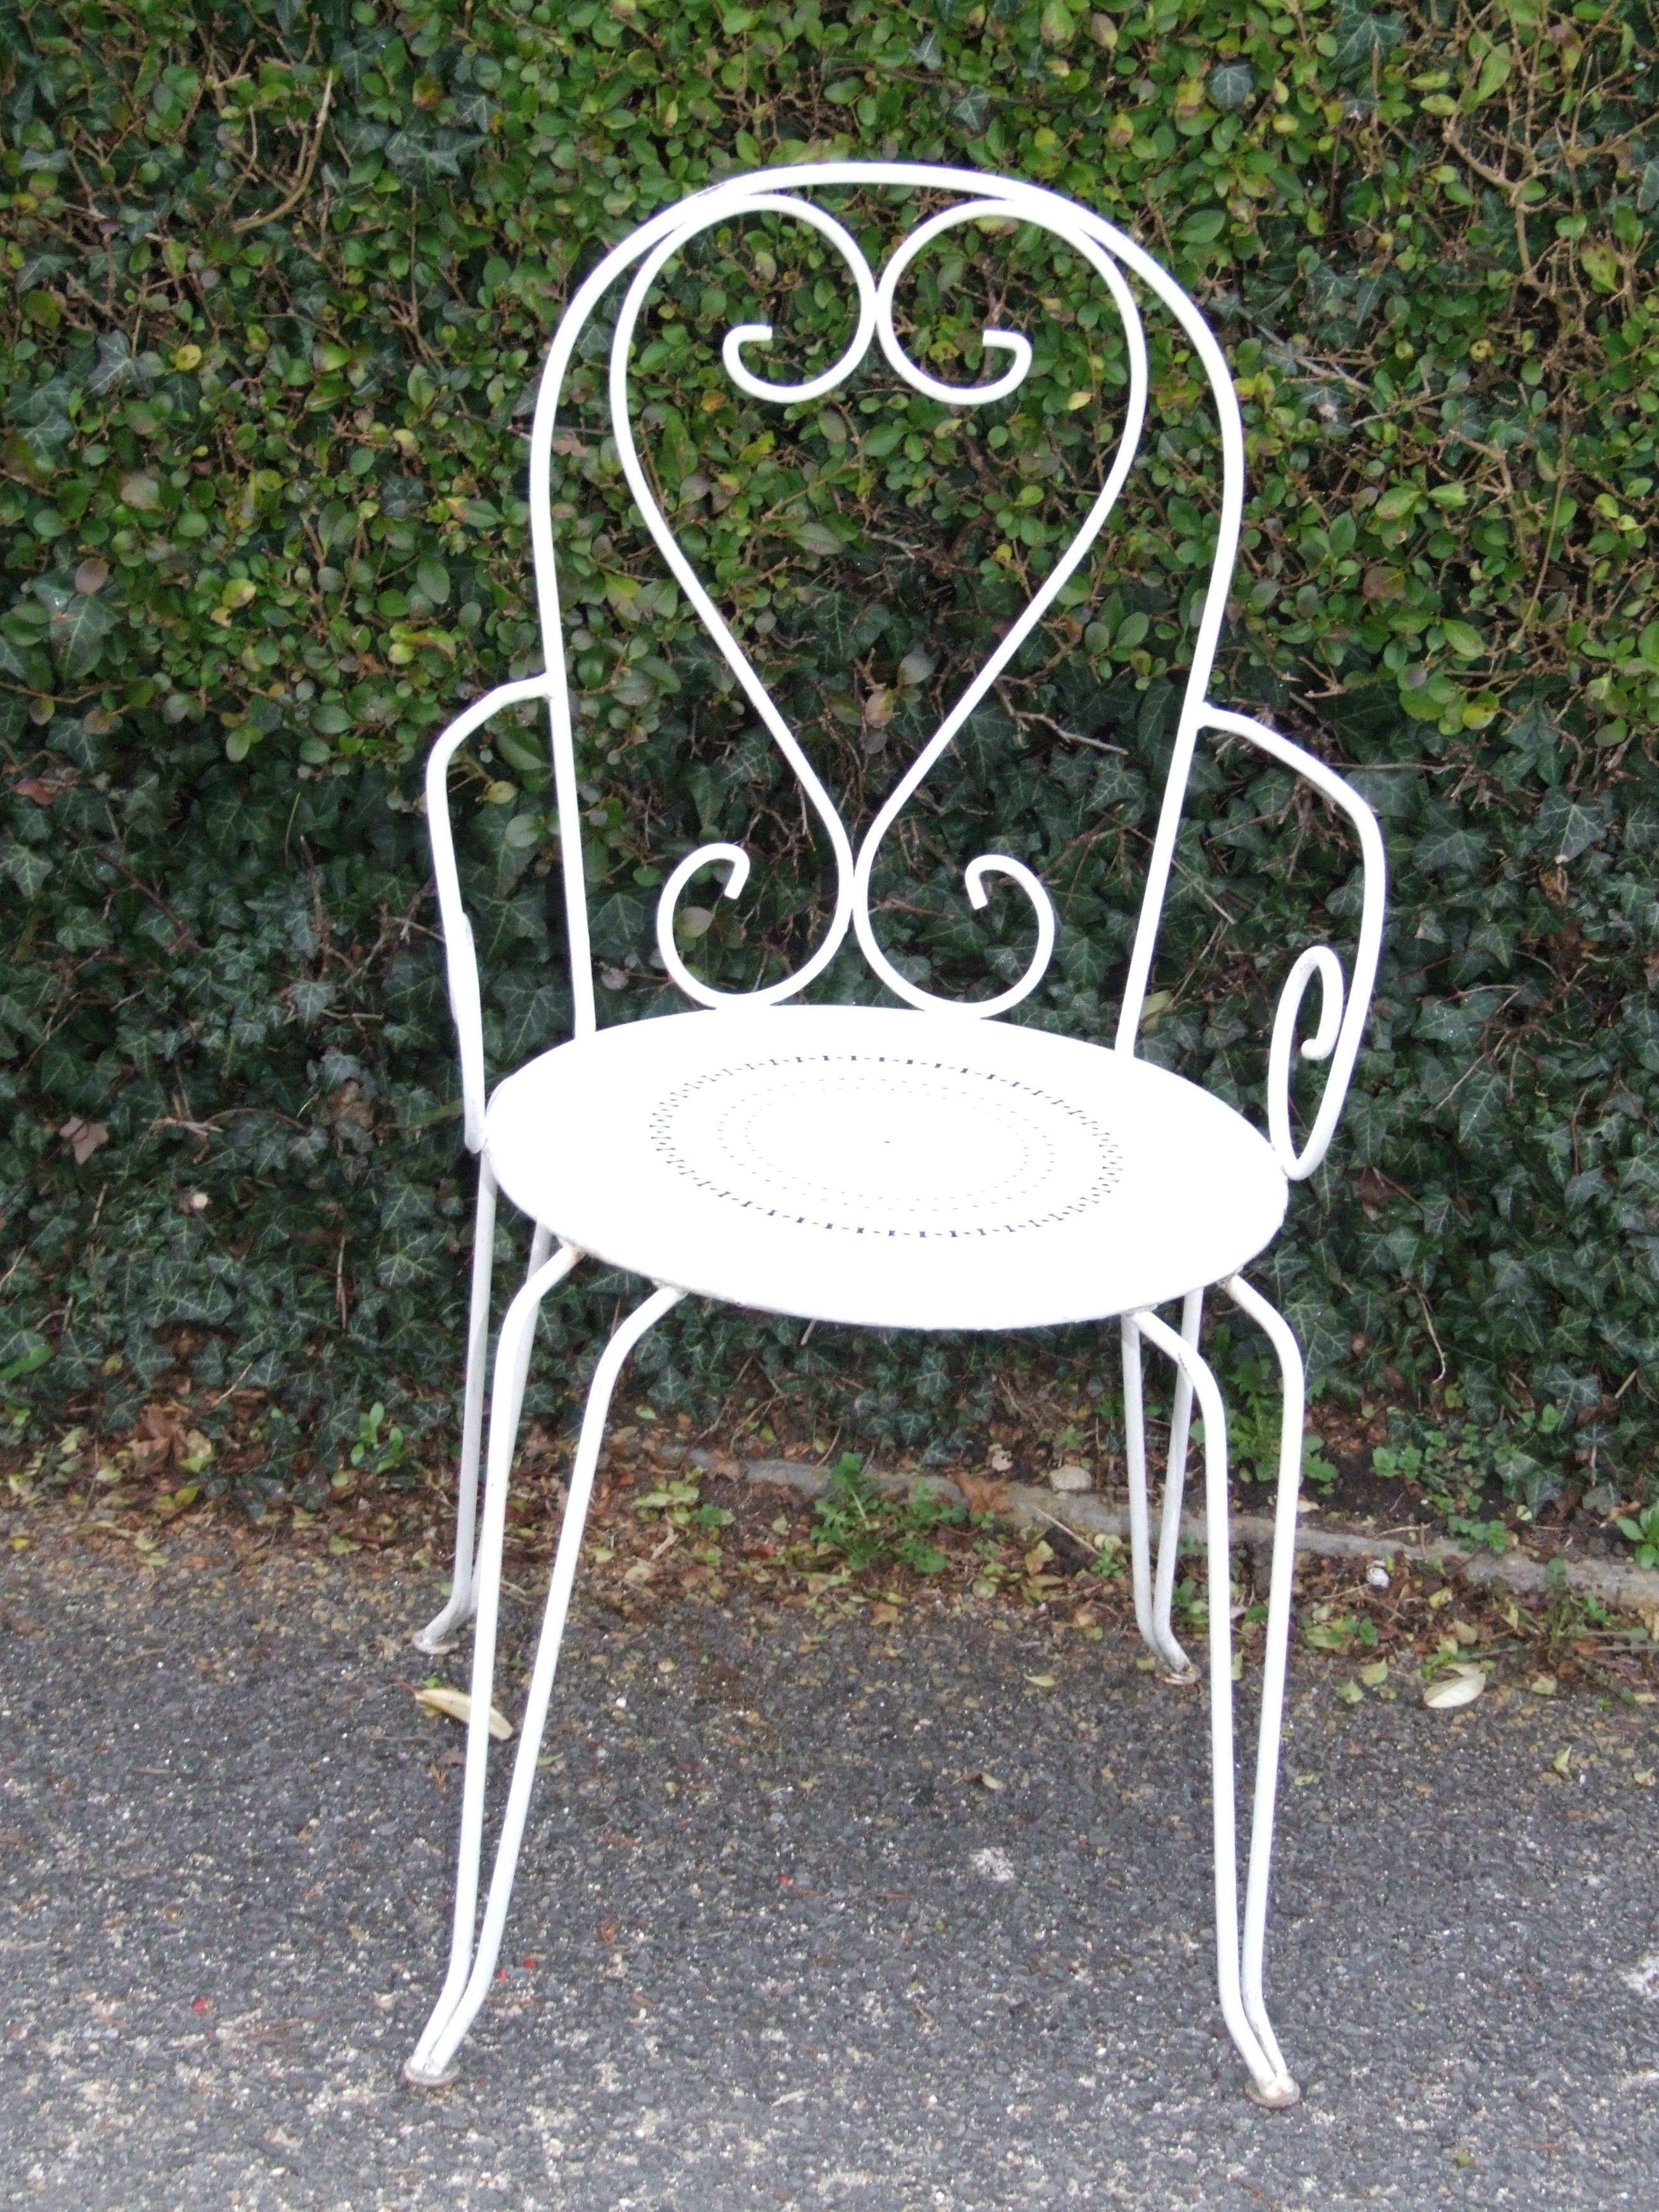 G075 s vintage french wrought iron garden patio chair la belle toffe French metal garden furniture